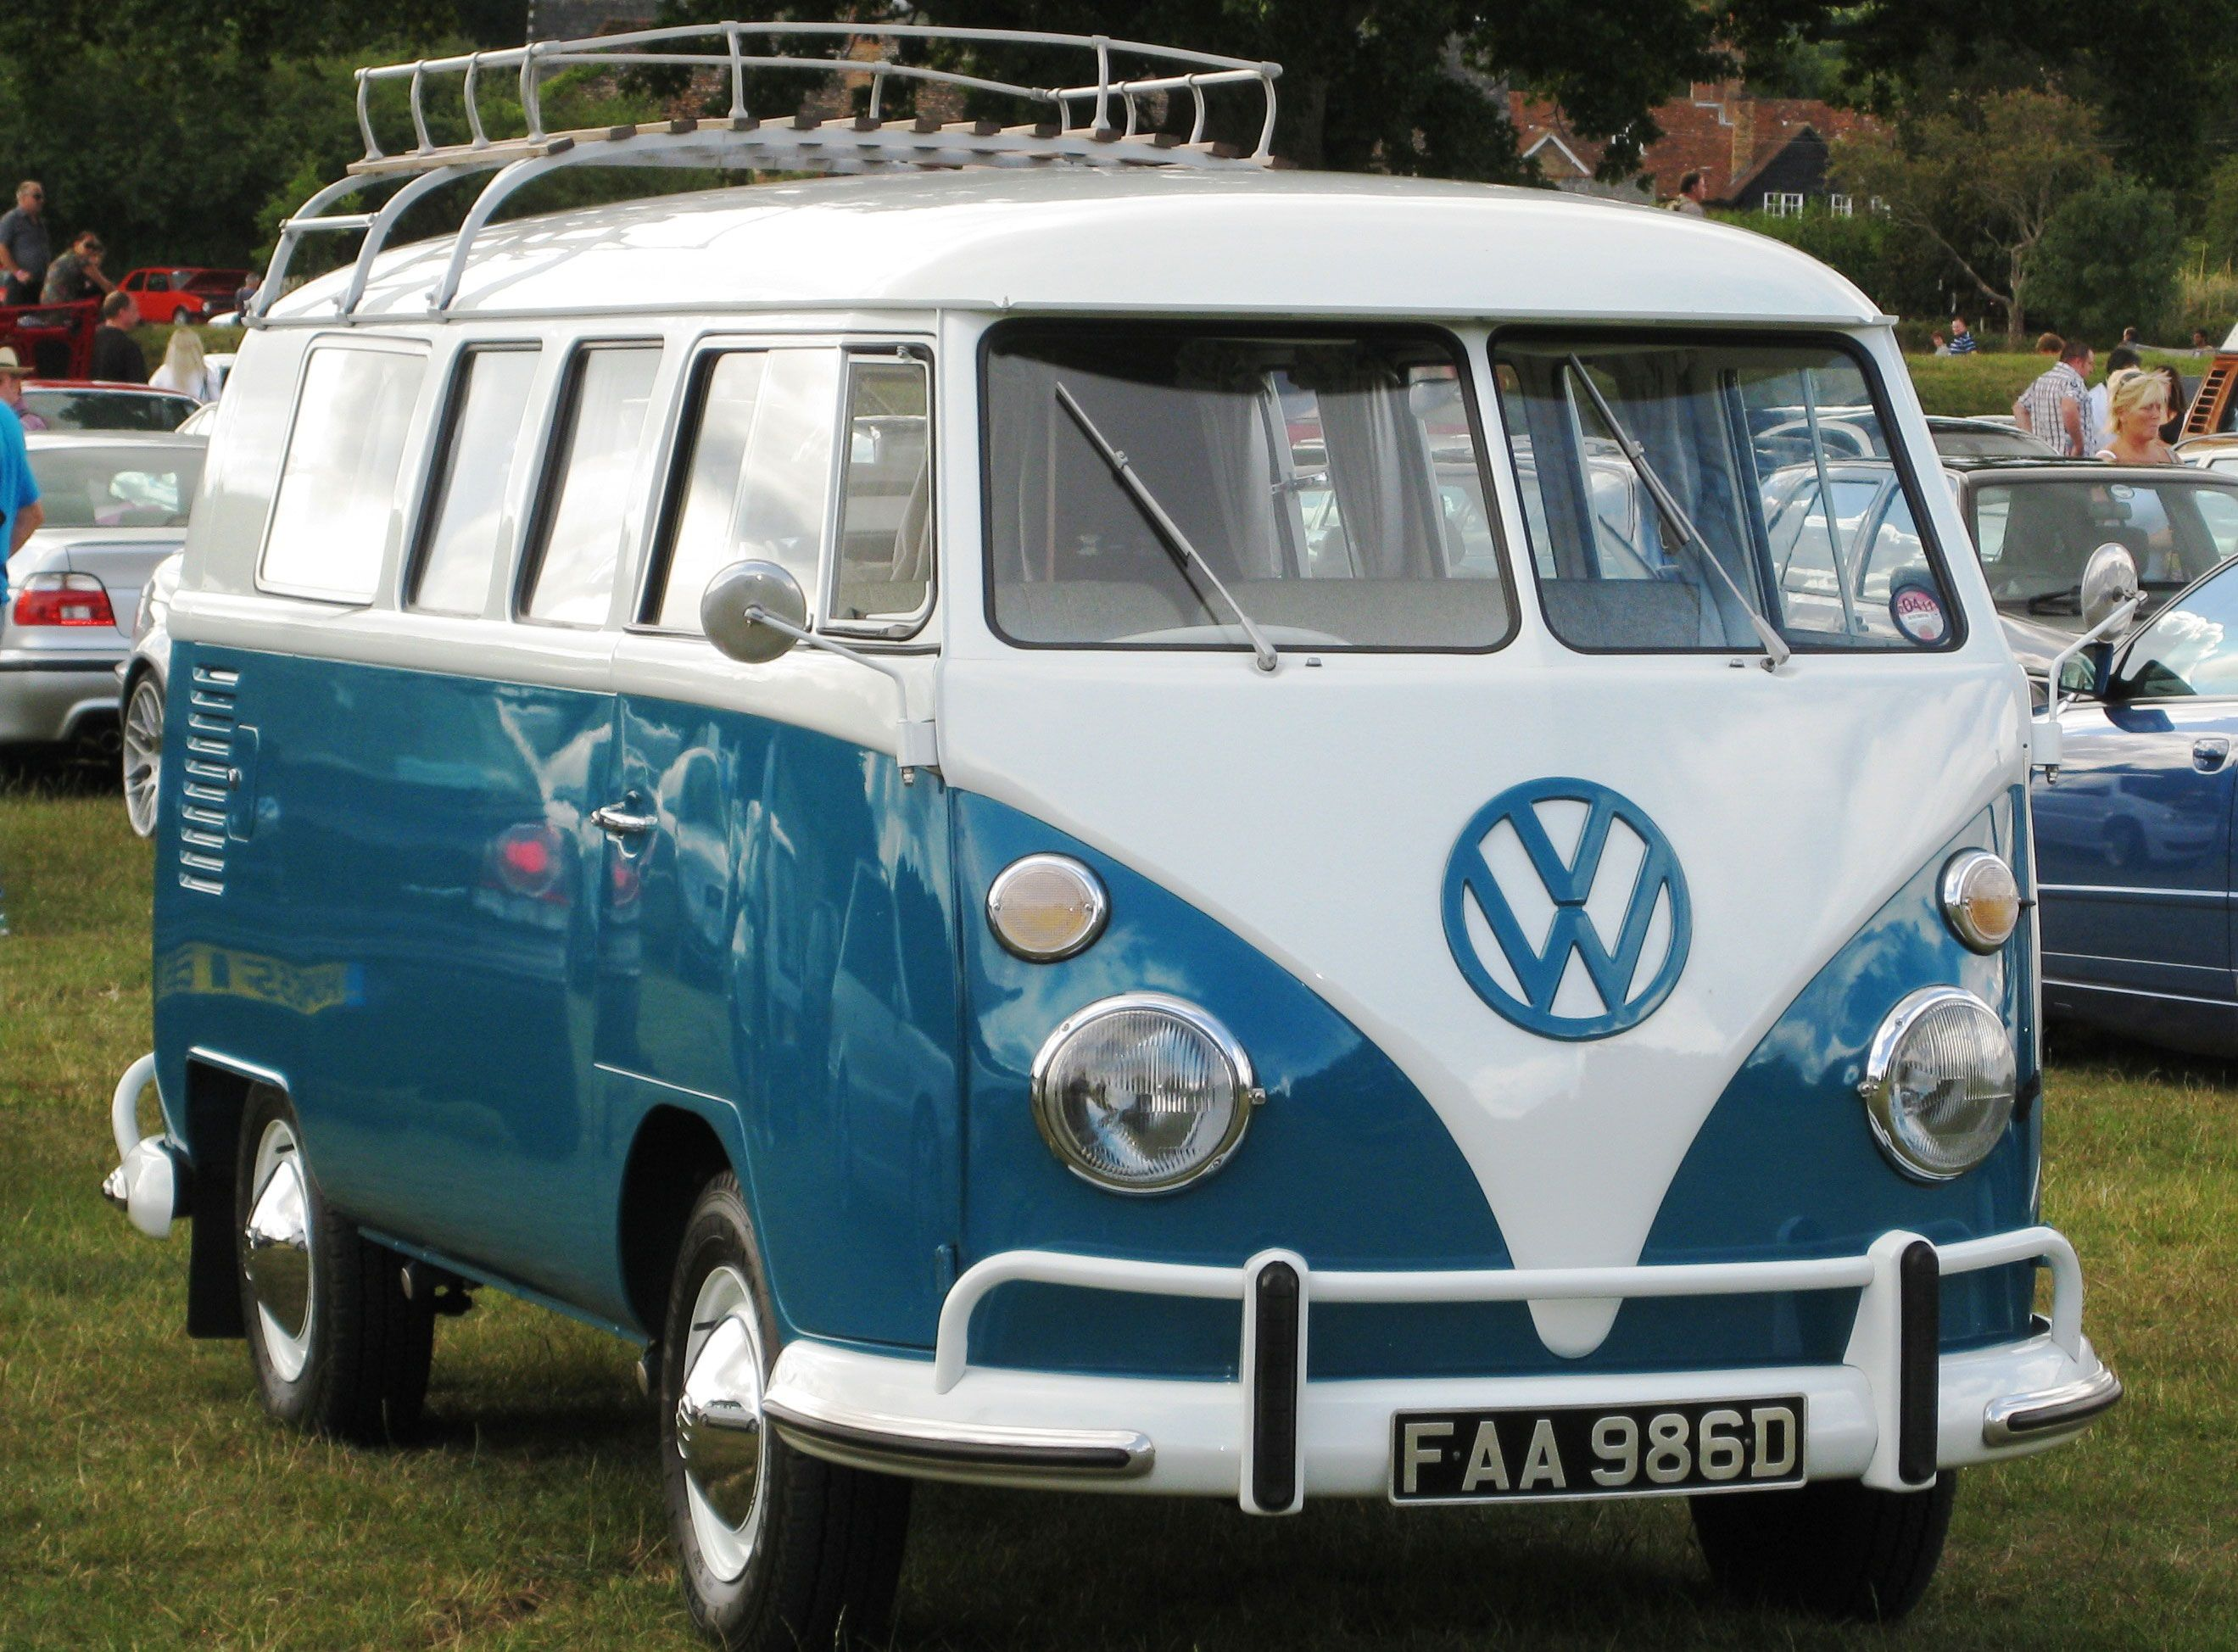 3c390bdb34 Image result for Volkswagen bus